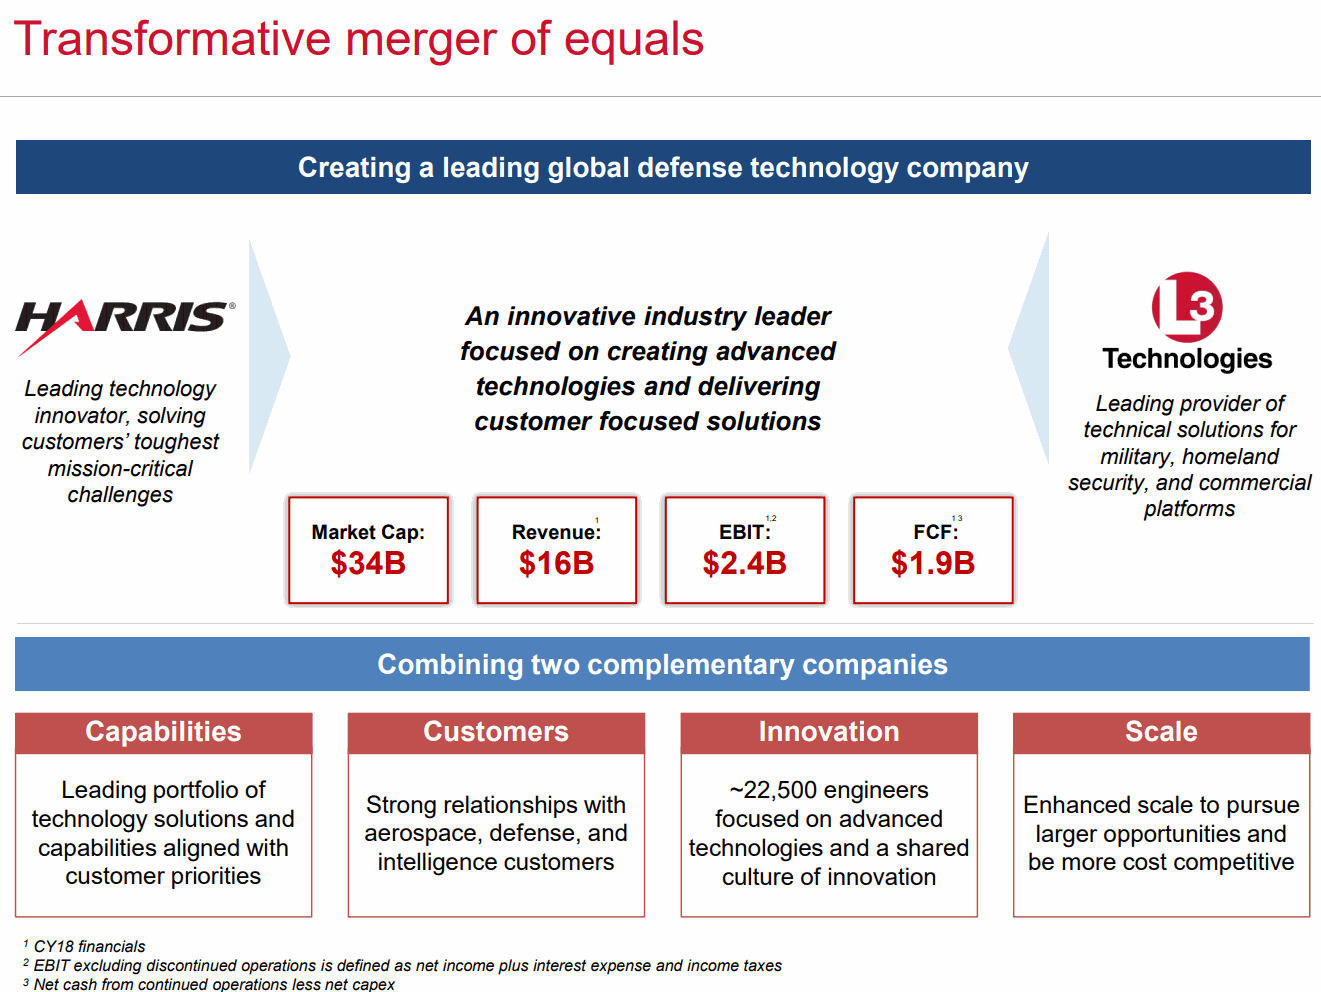 L3-technologies-and-Harris-merger-of-equals